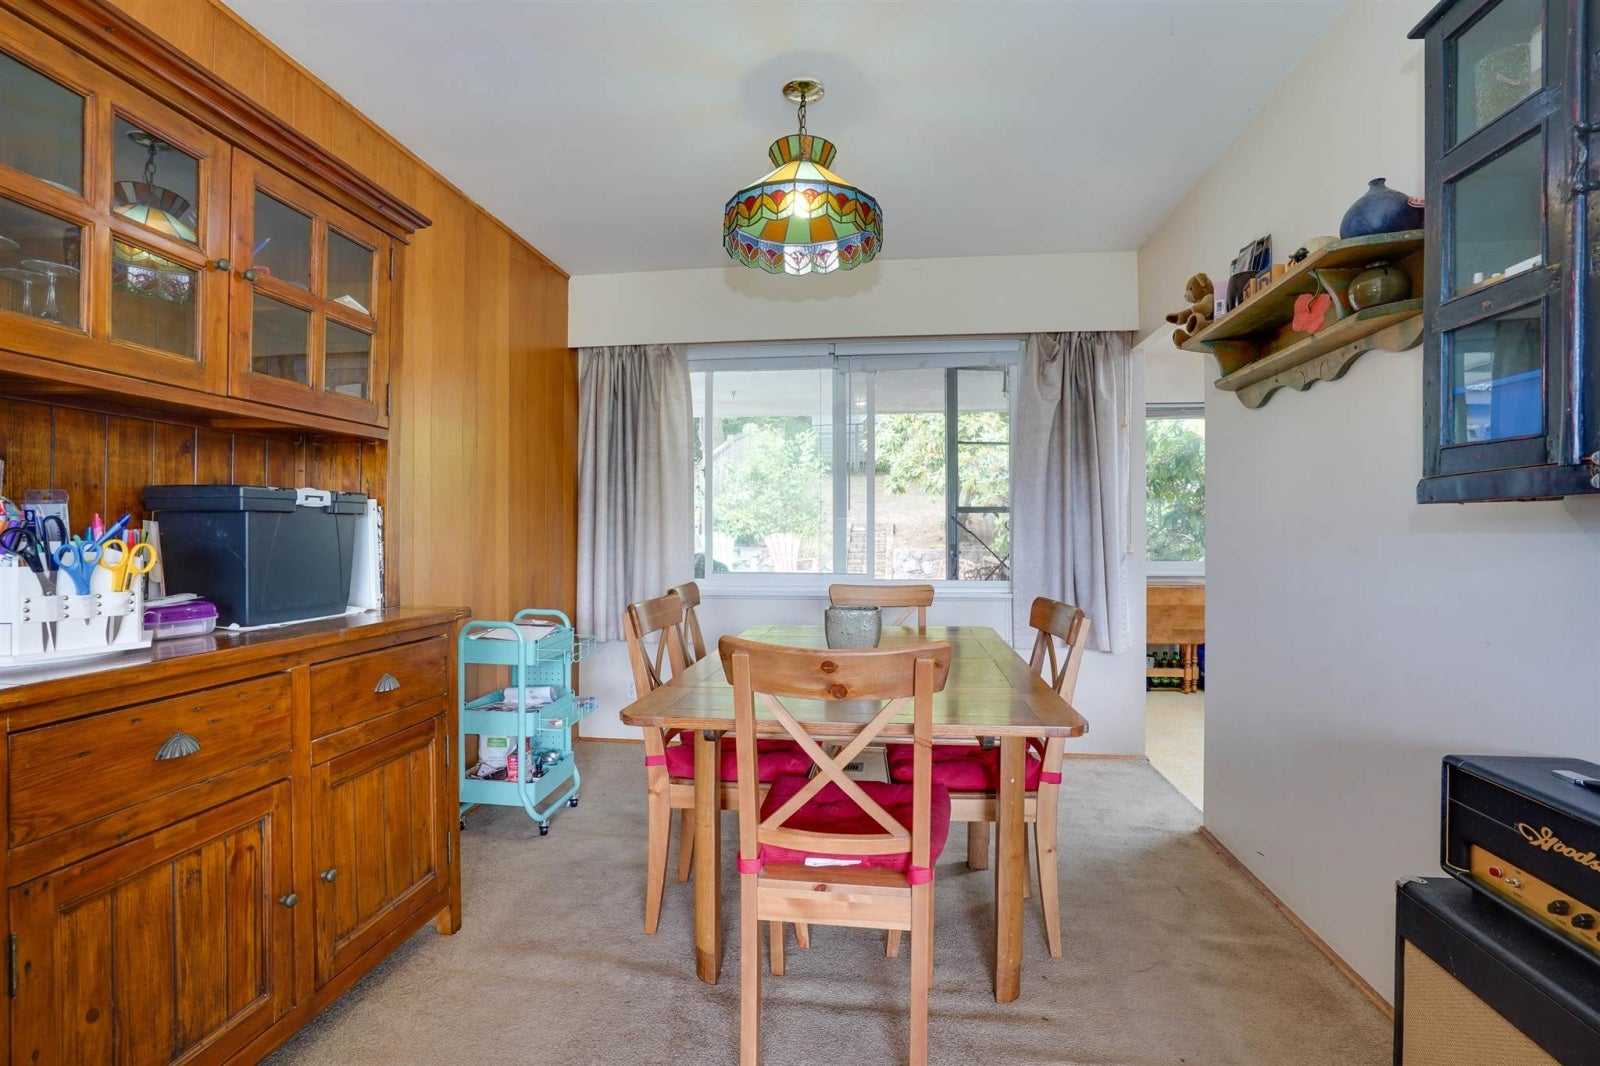 1044 W 17TH STREET - Pemberton Heights House/Single Family for sale, 3 Bedrooms (R2602389) #6